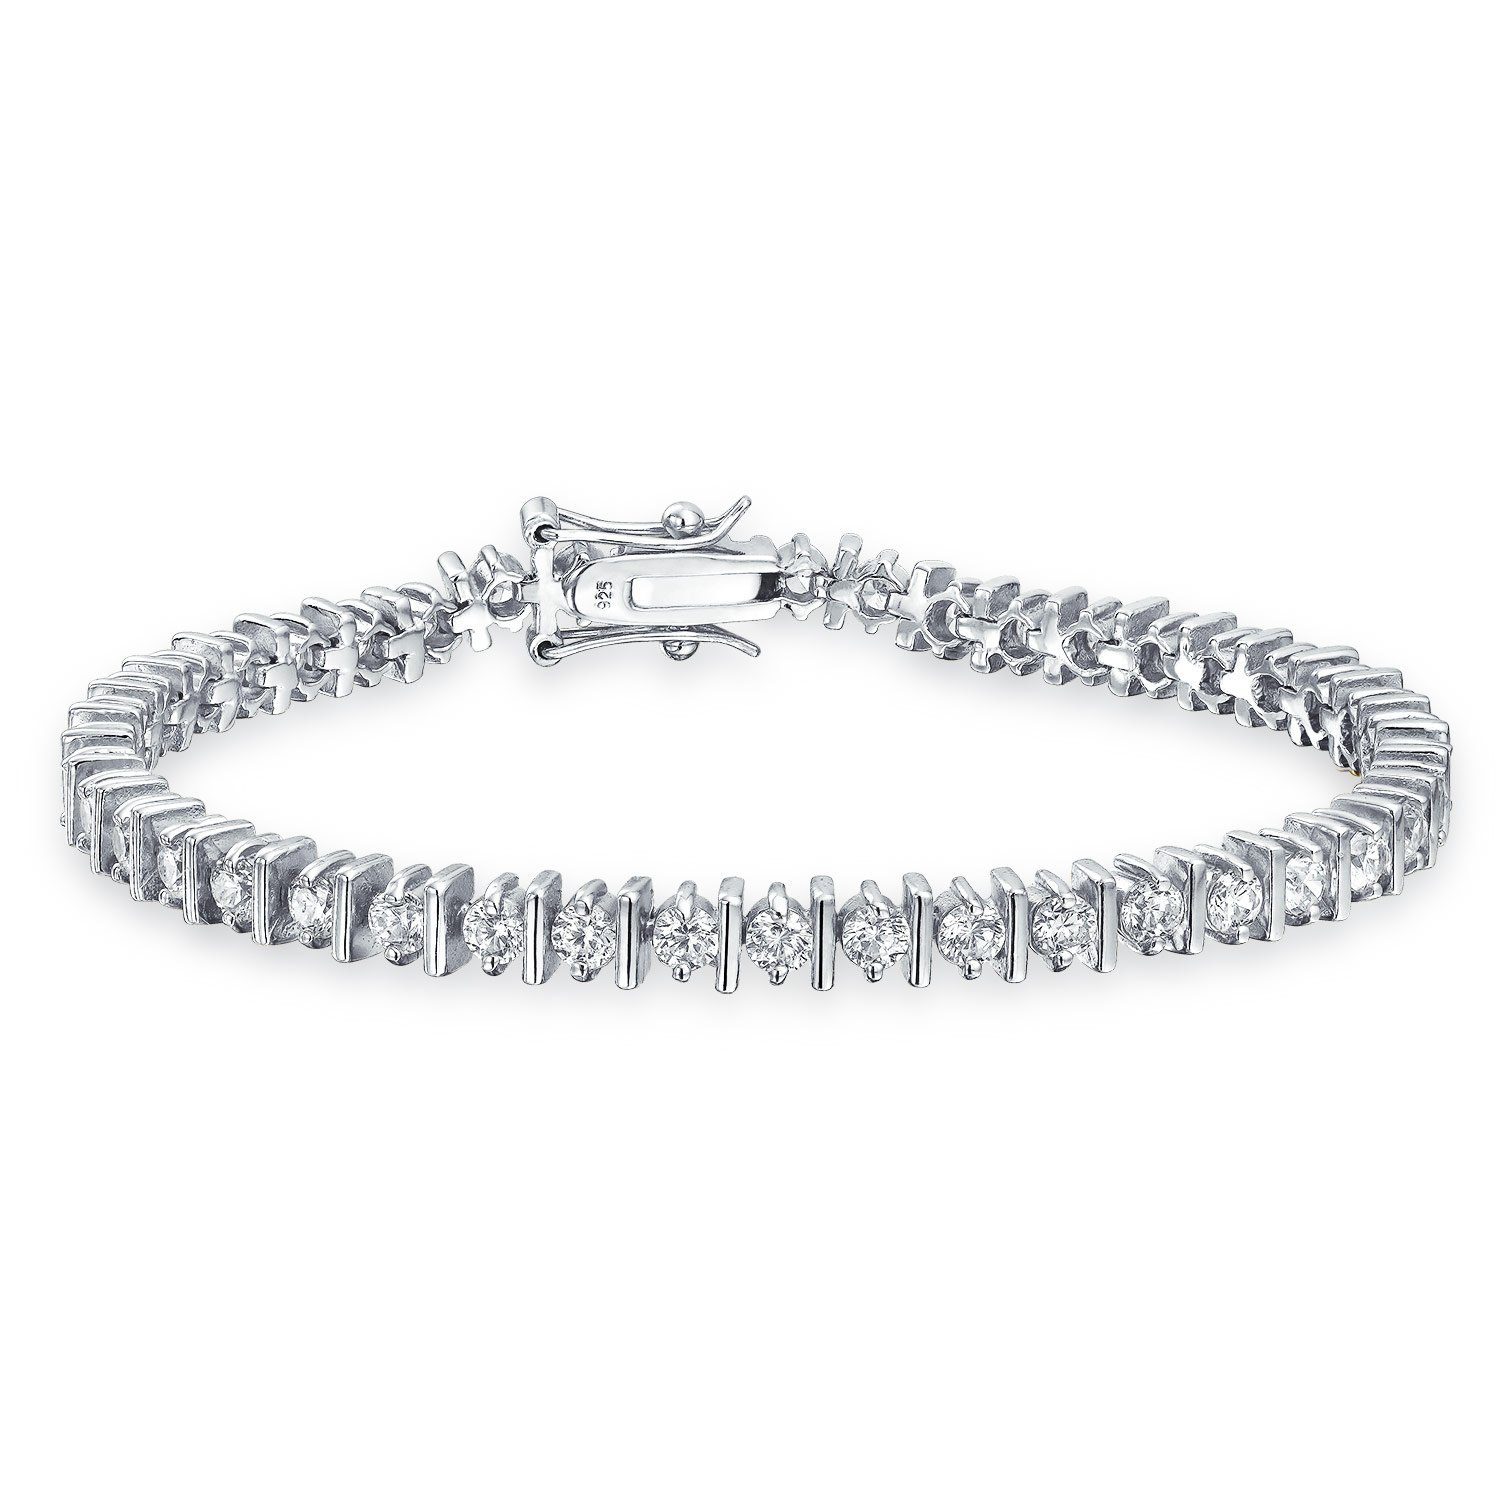 Bling Jewelry Classic Separated CZ Tennis Bracelet 925 Sterling Silver 7in newitem25857628